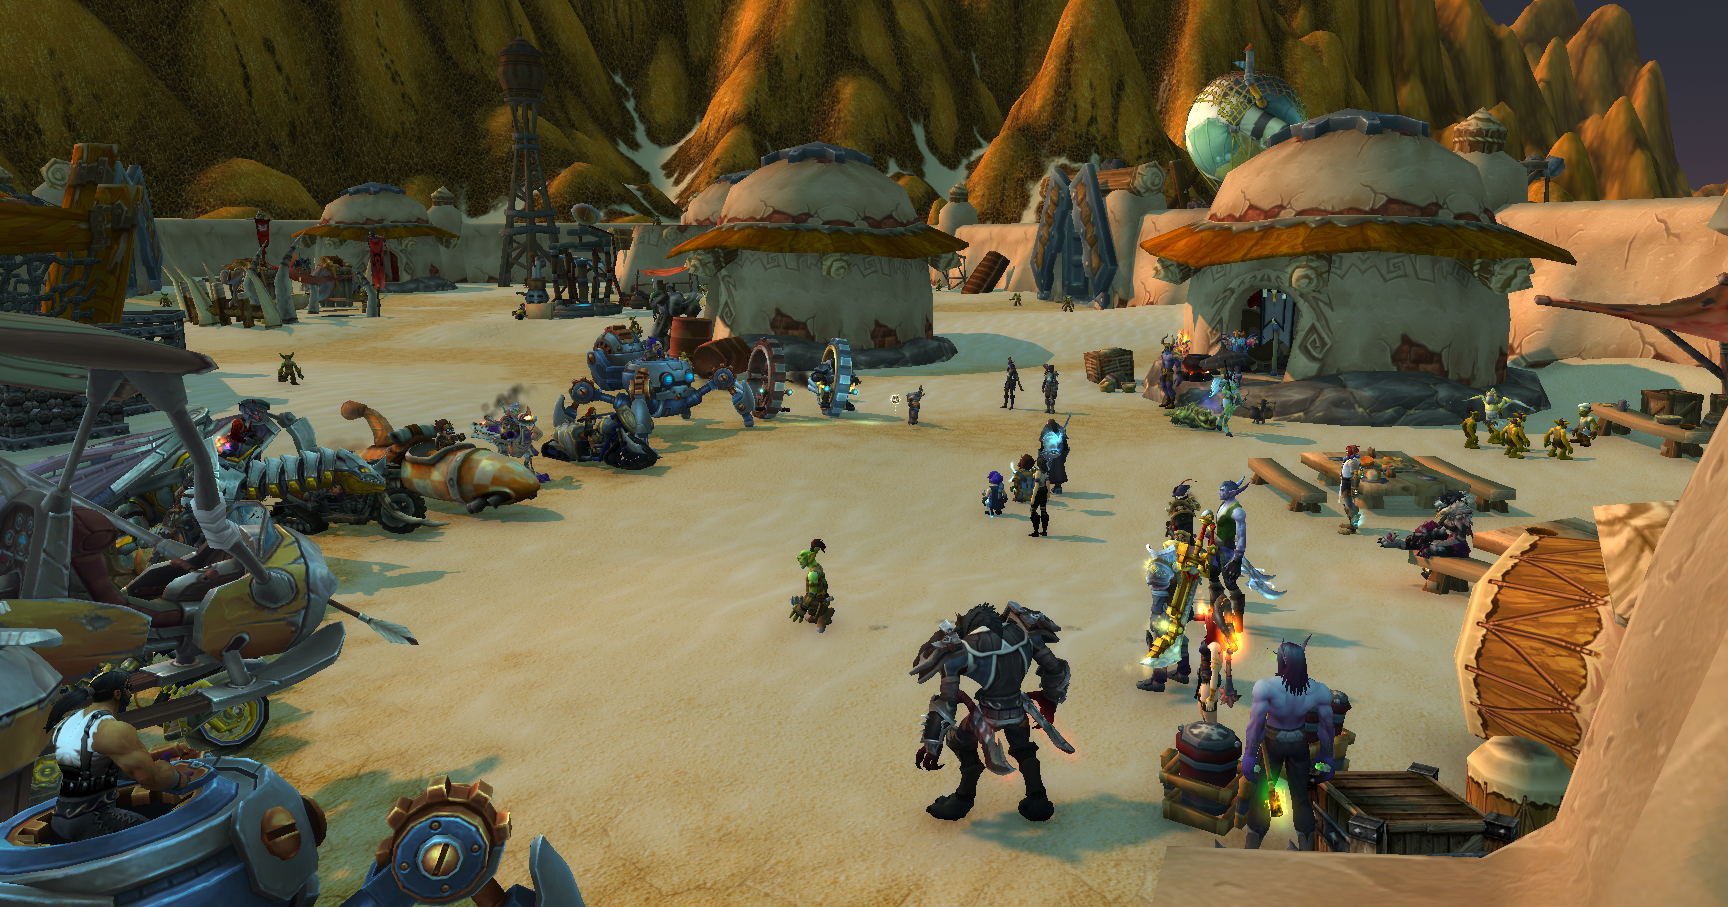 World of Warcraft - a group of players, riding a variety of cool mounts, gather in the goblin city of Gadgetzan in Tanaris